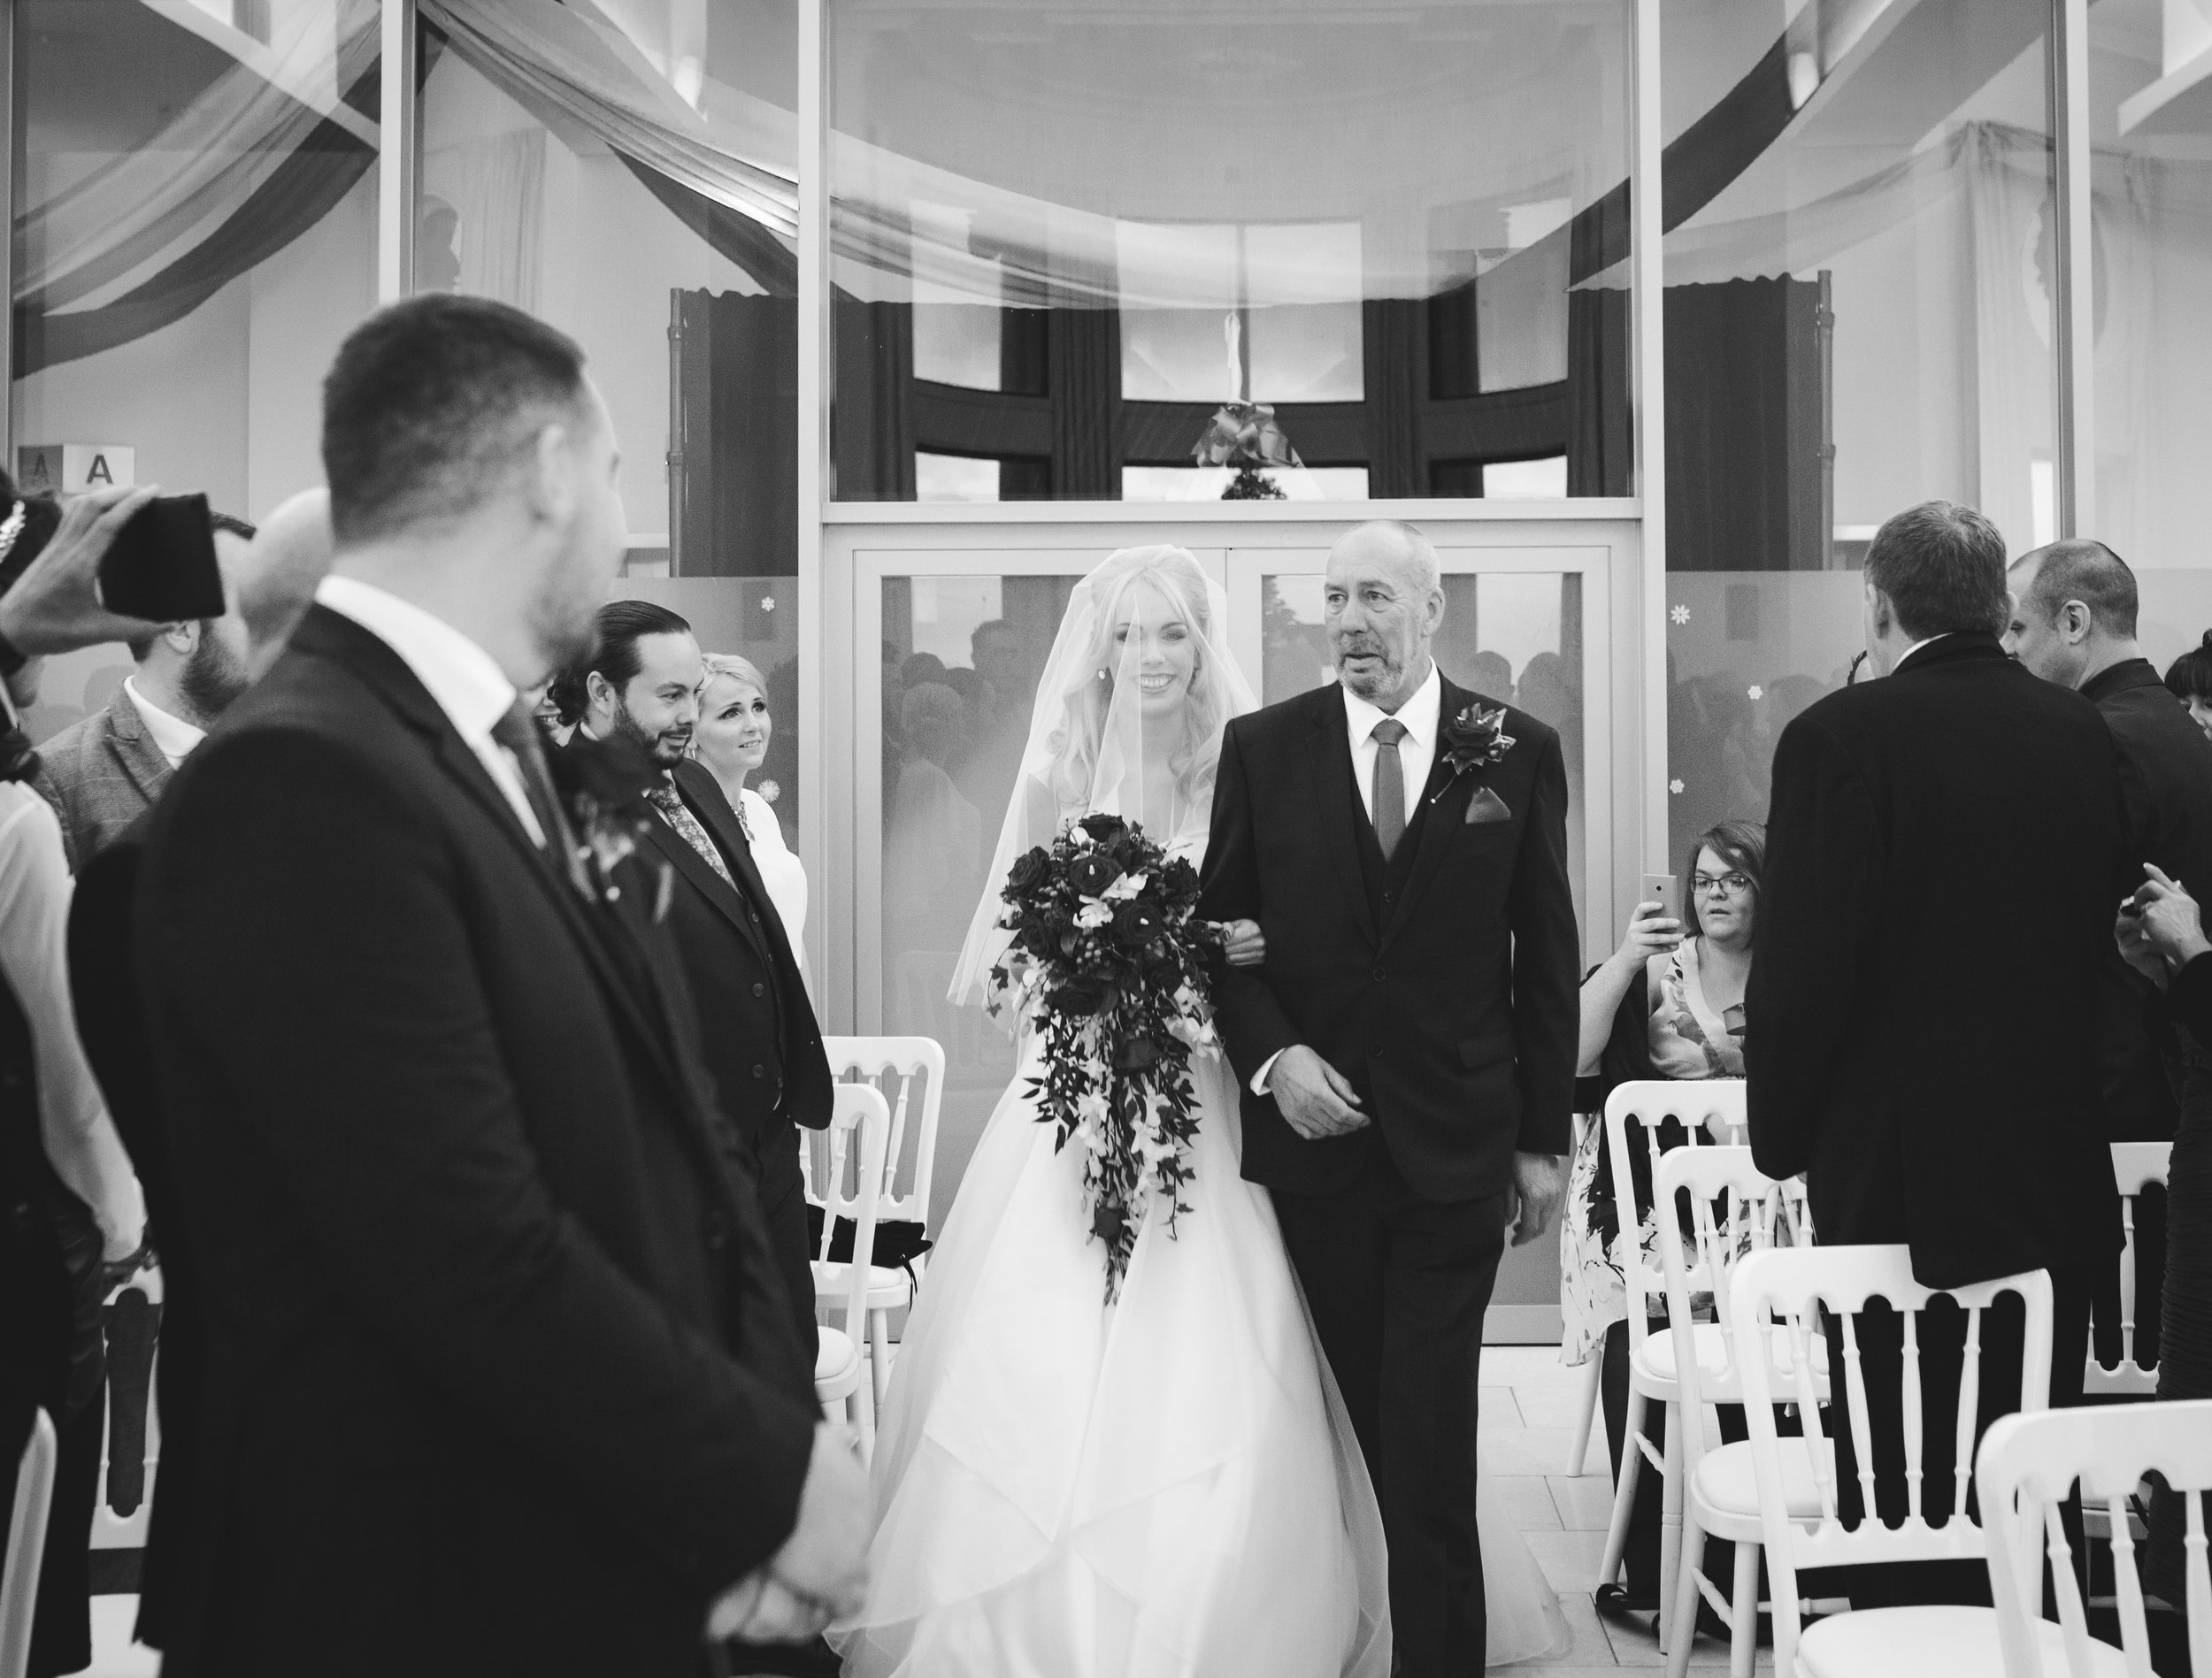 walking down the aisle at the Liver Building